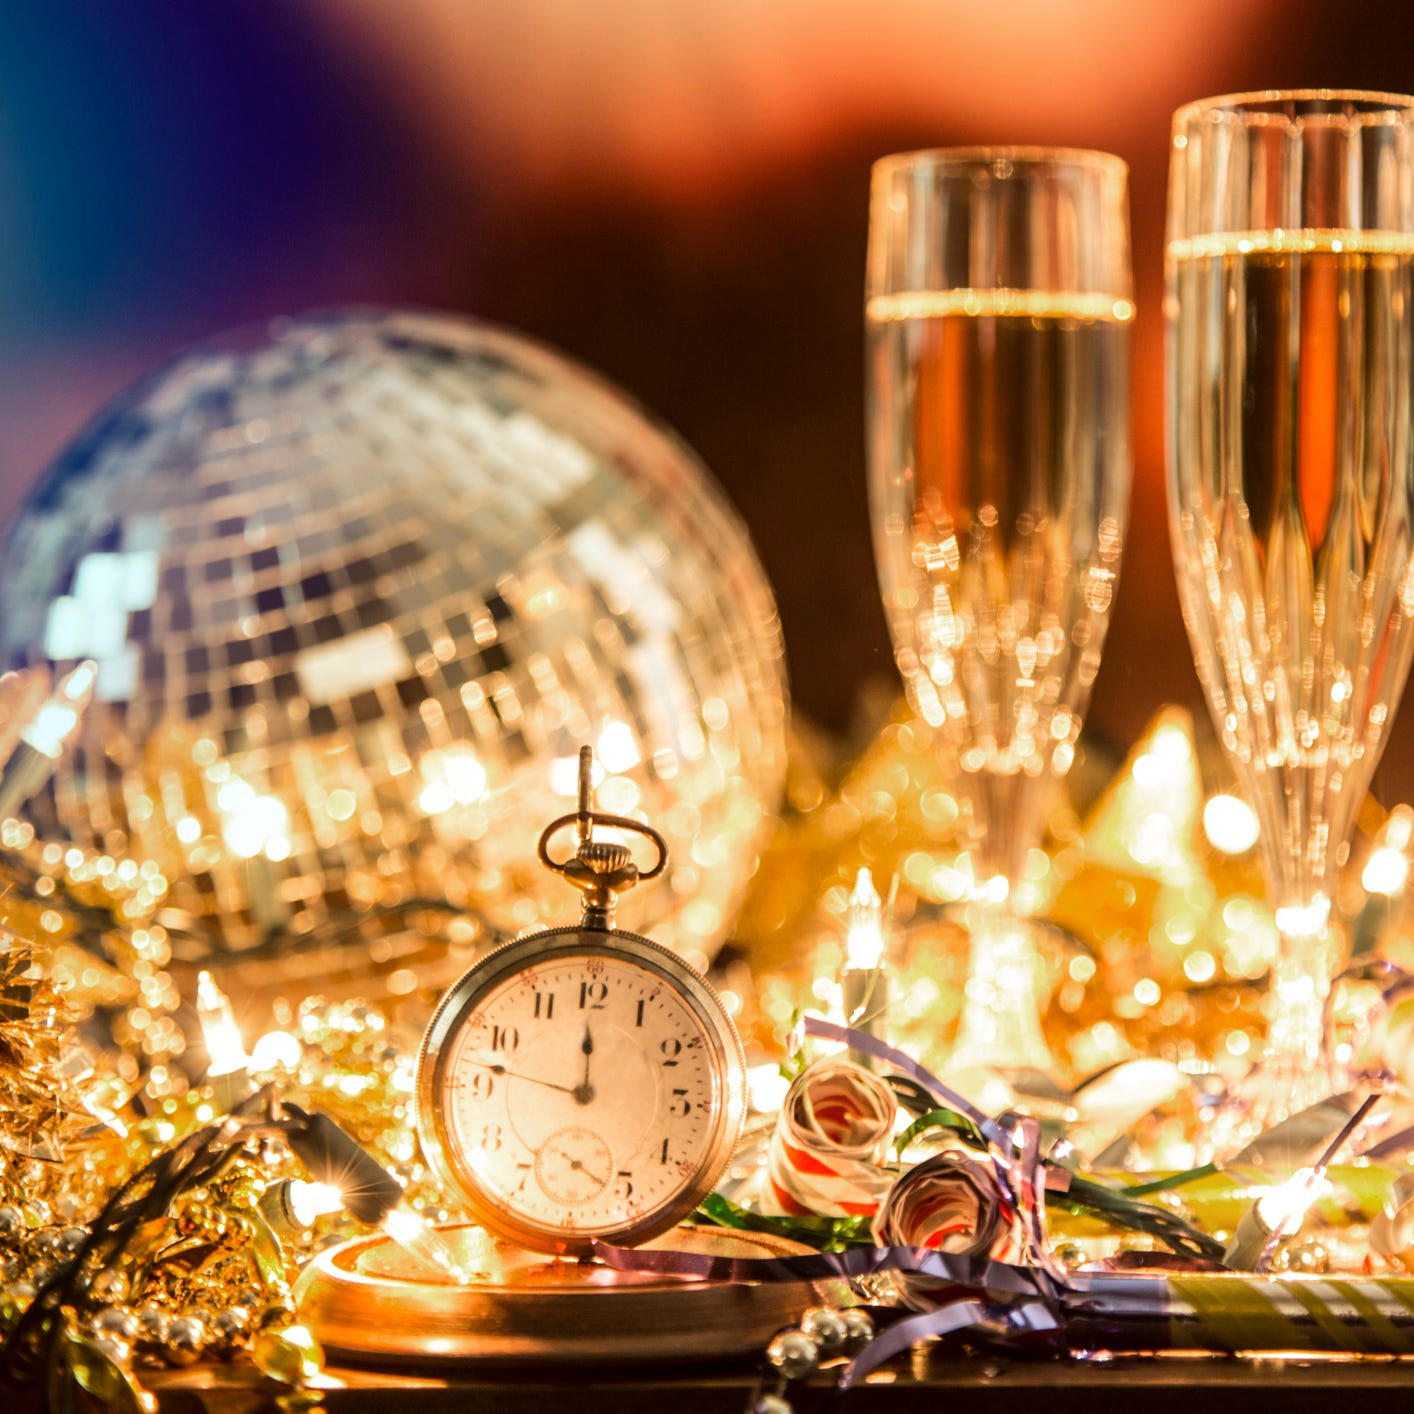 Still looking for New Year's Eve plans? Check these events out.